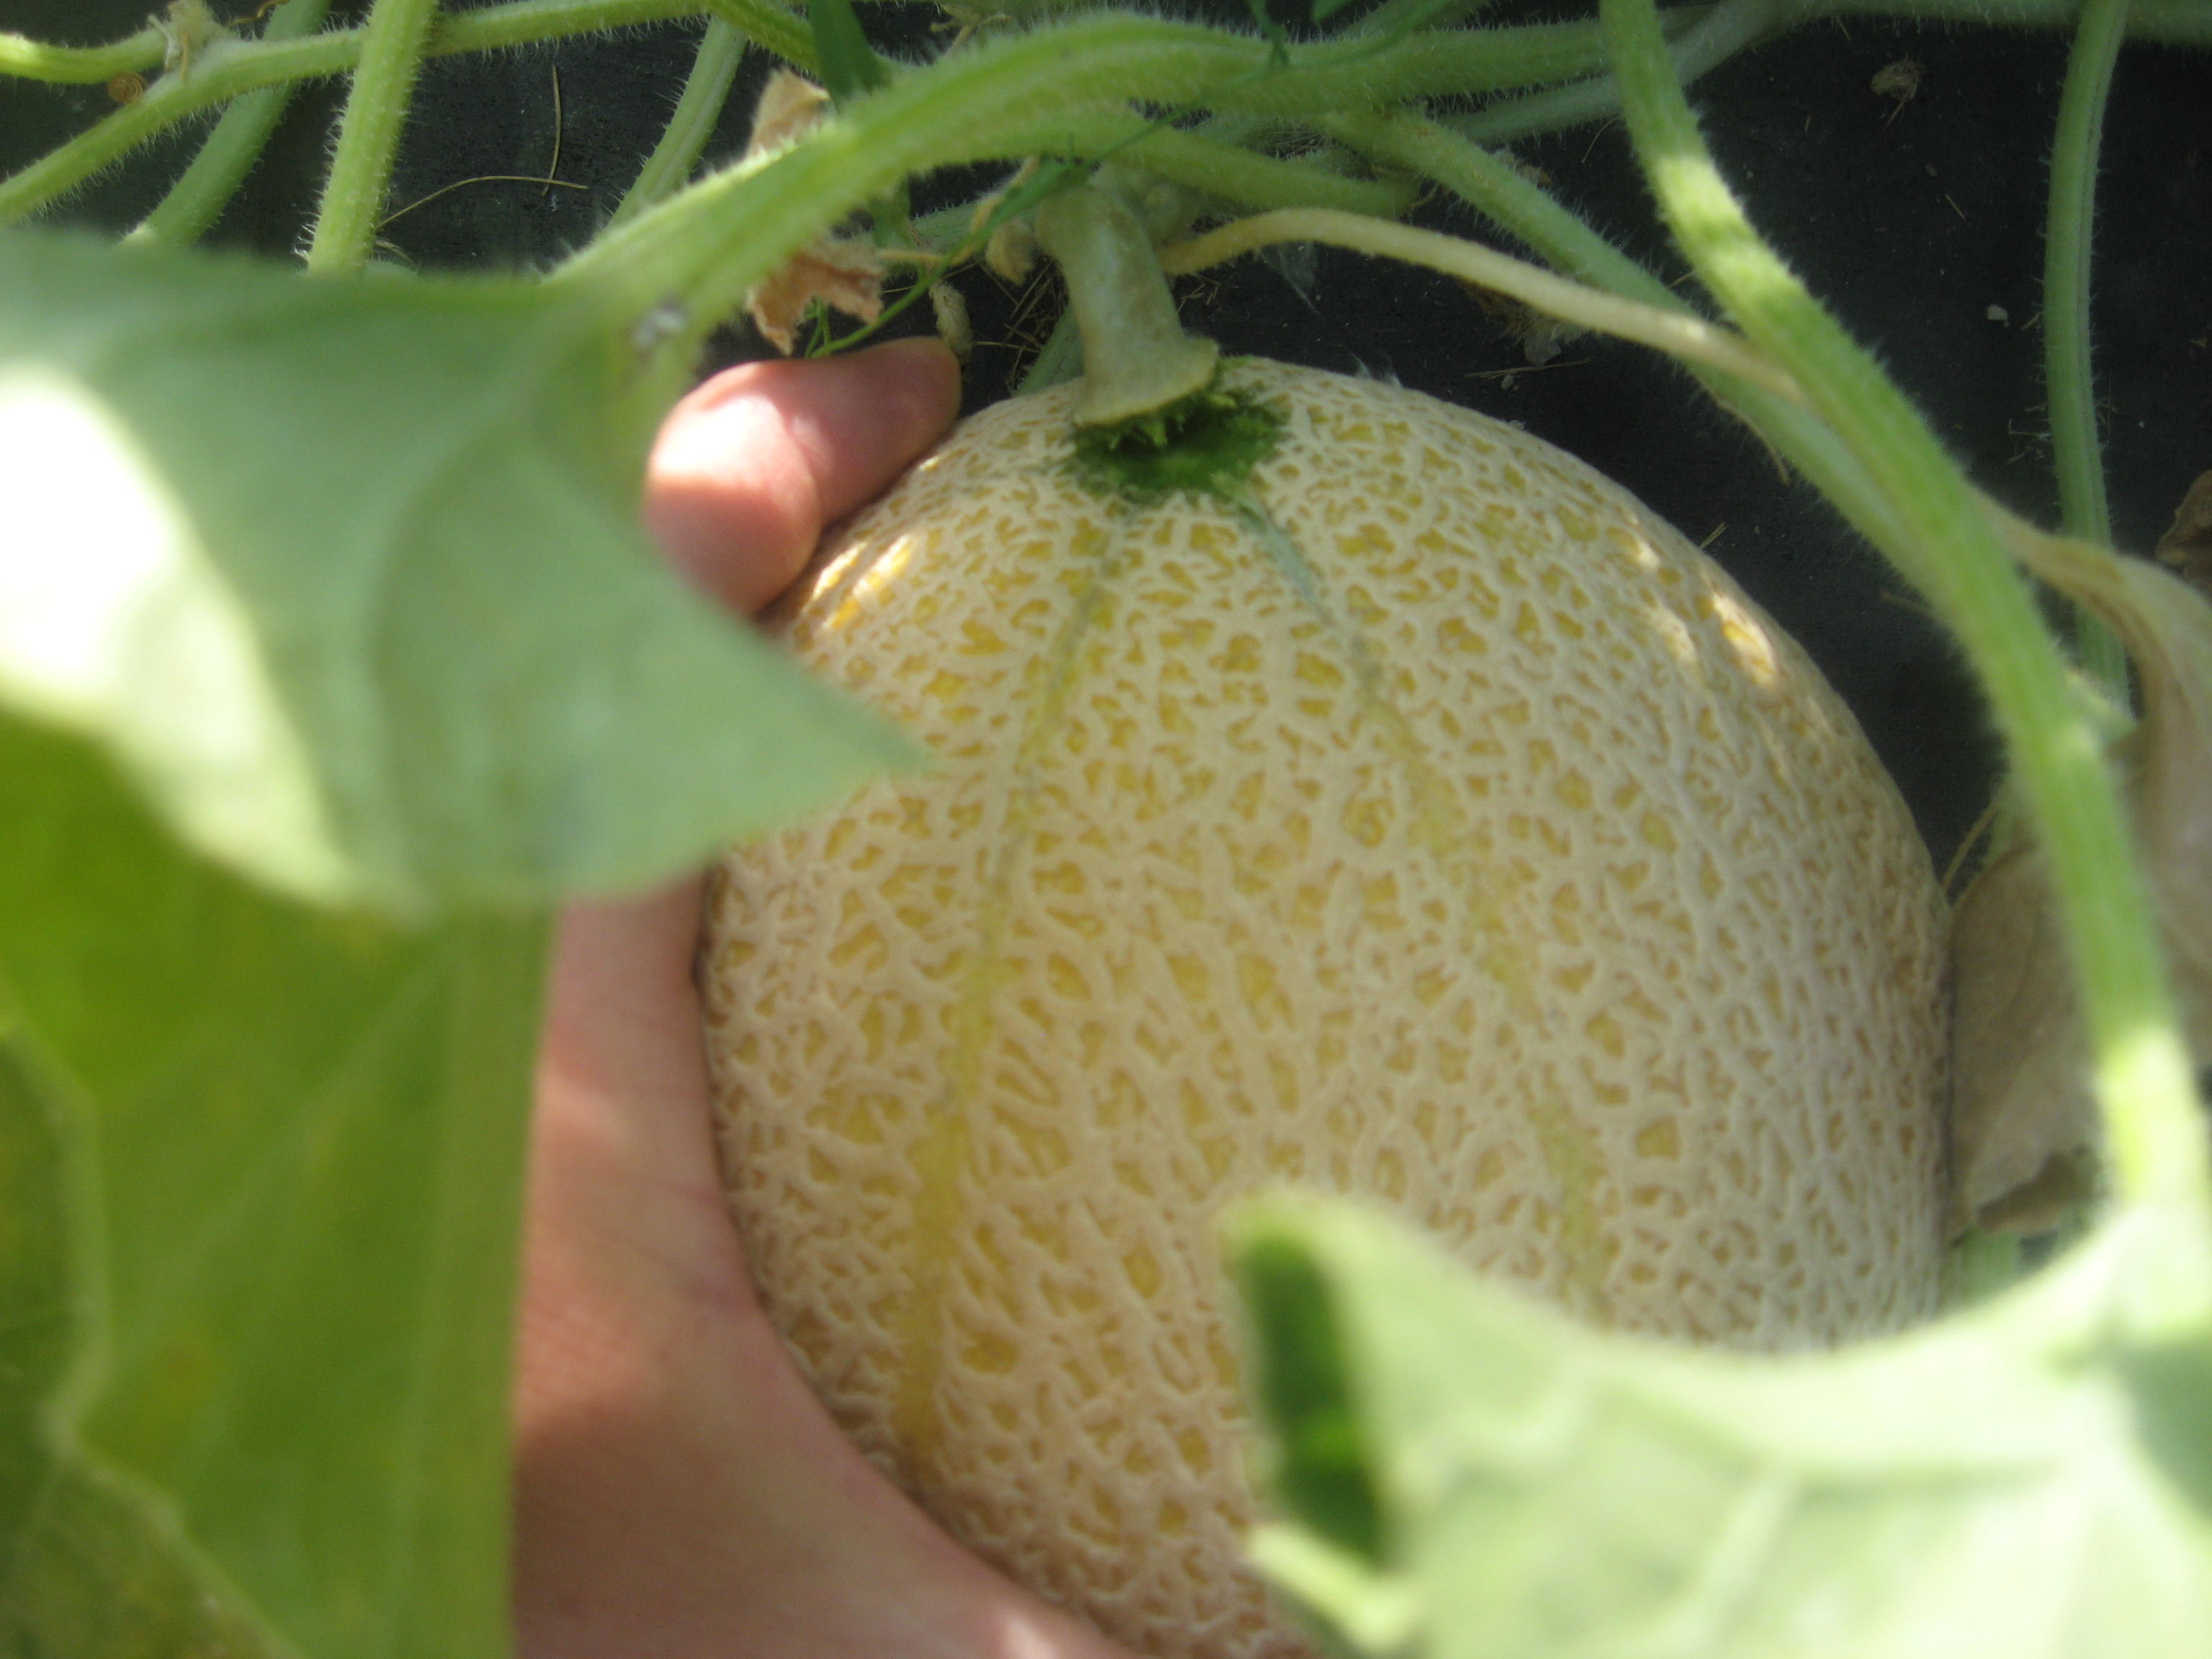 A gentle tug will cause the vine to separate from the melon when its ready to pick